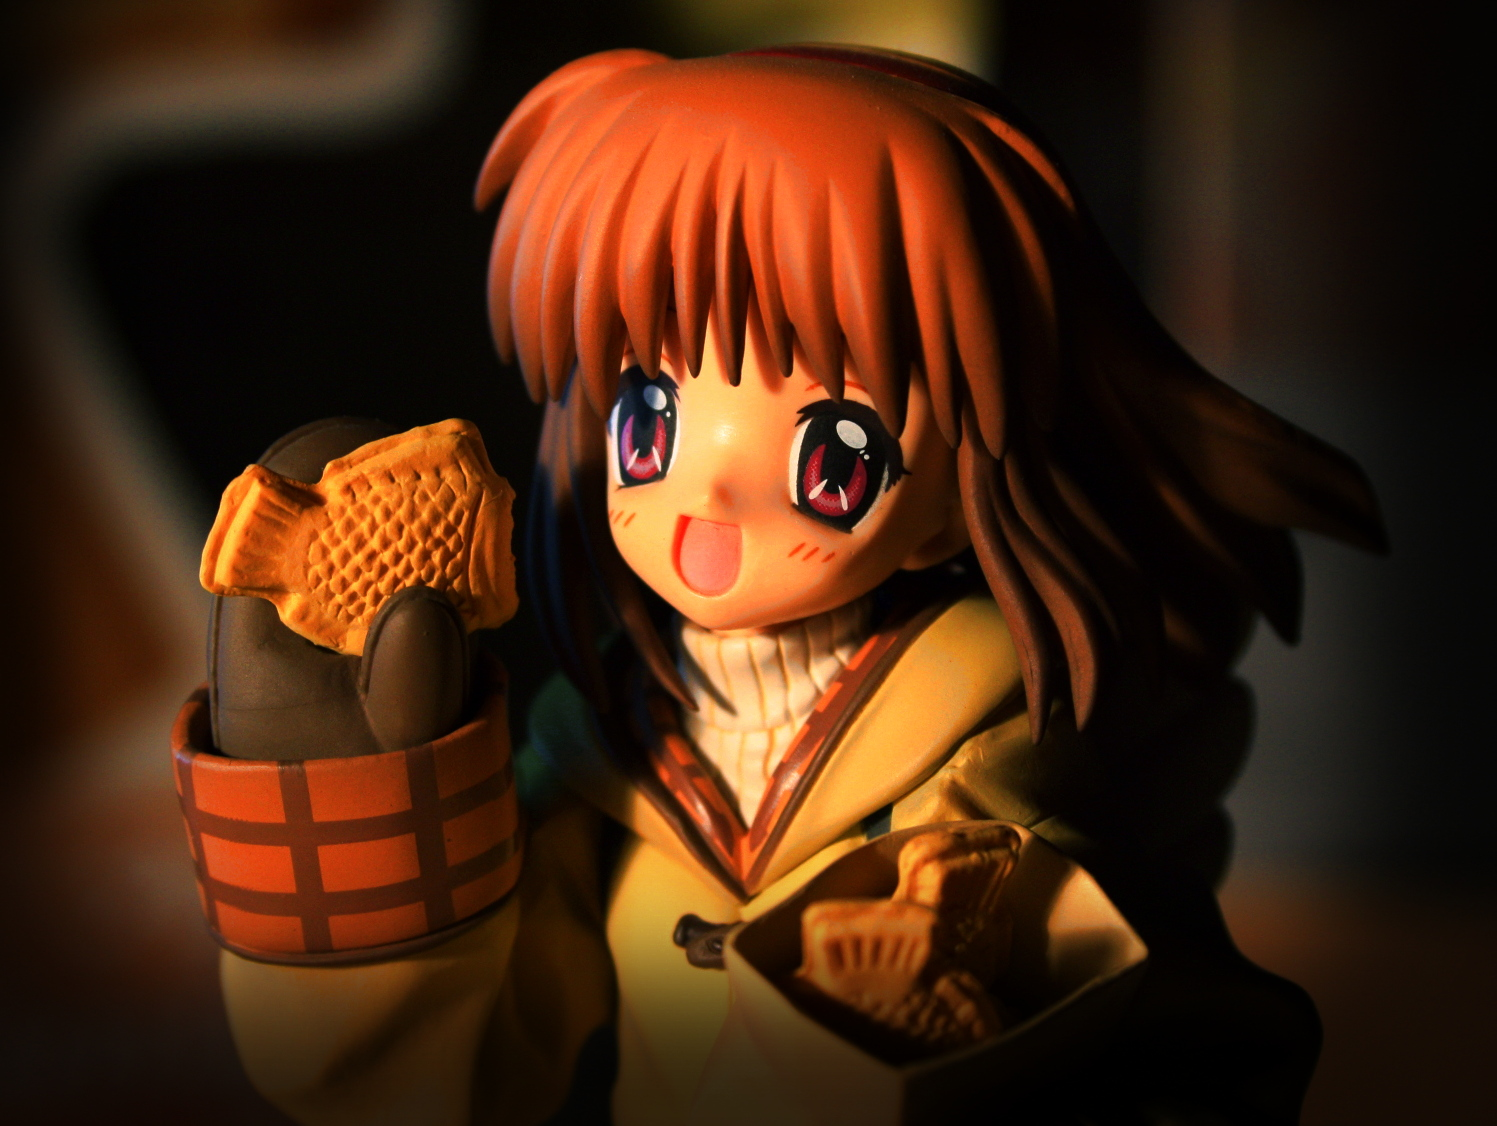 red_eyes mittens taiyaki key smiling kotobukiya brown_hair short_hair kanon tsukimiya_ayu visual_art's takaku_&_takeji